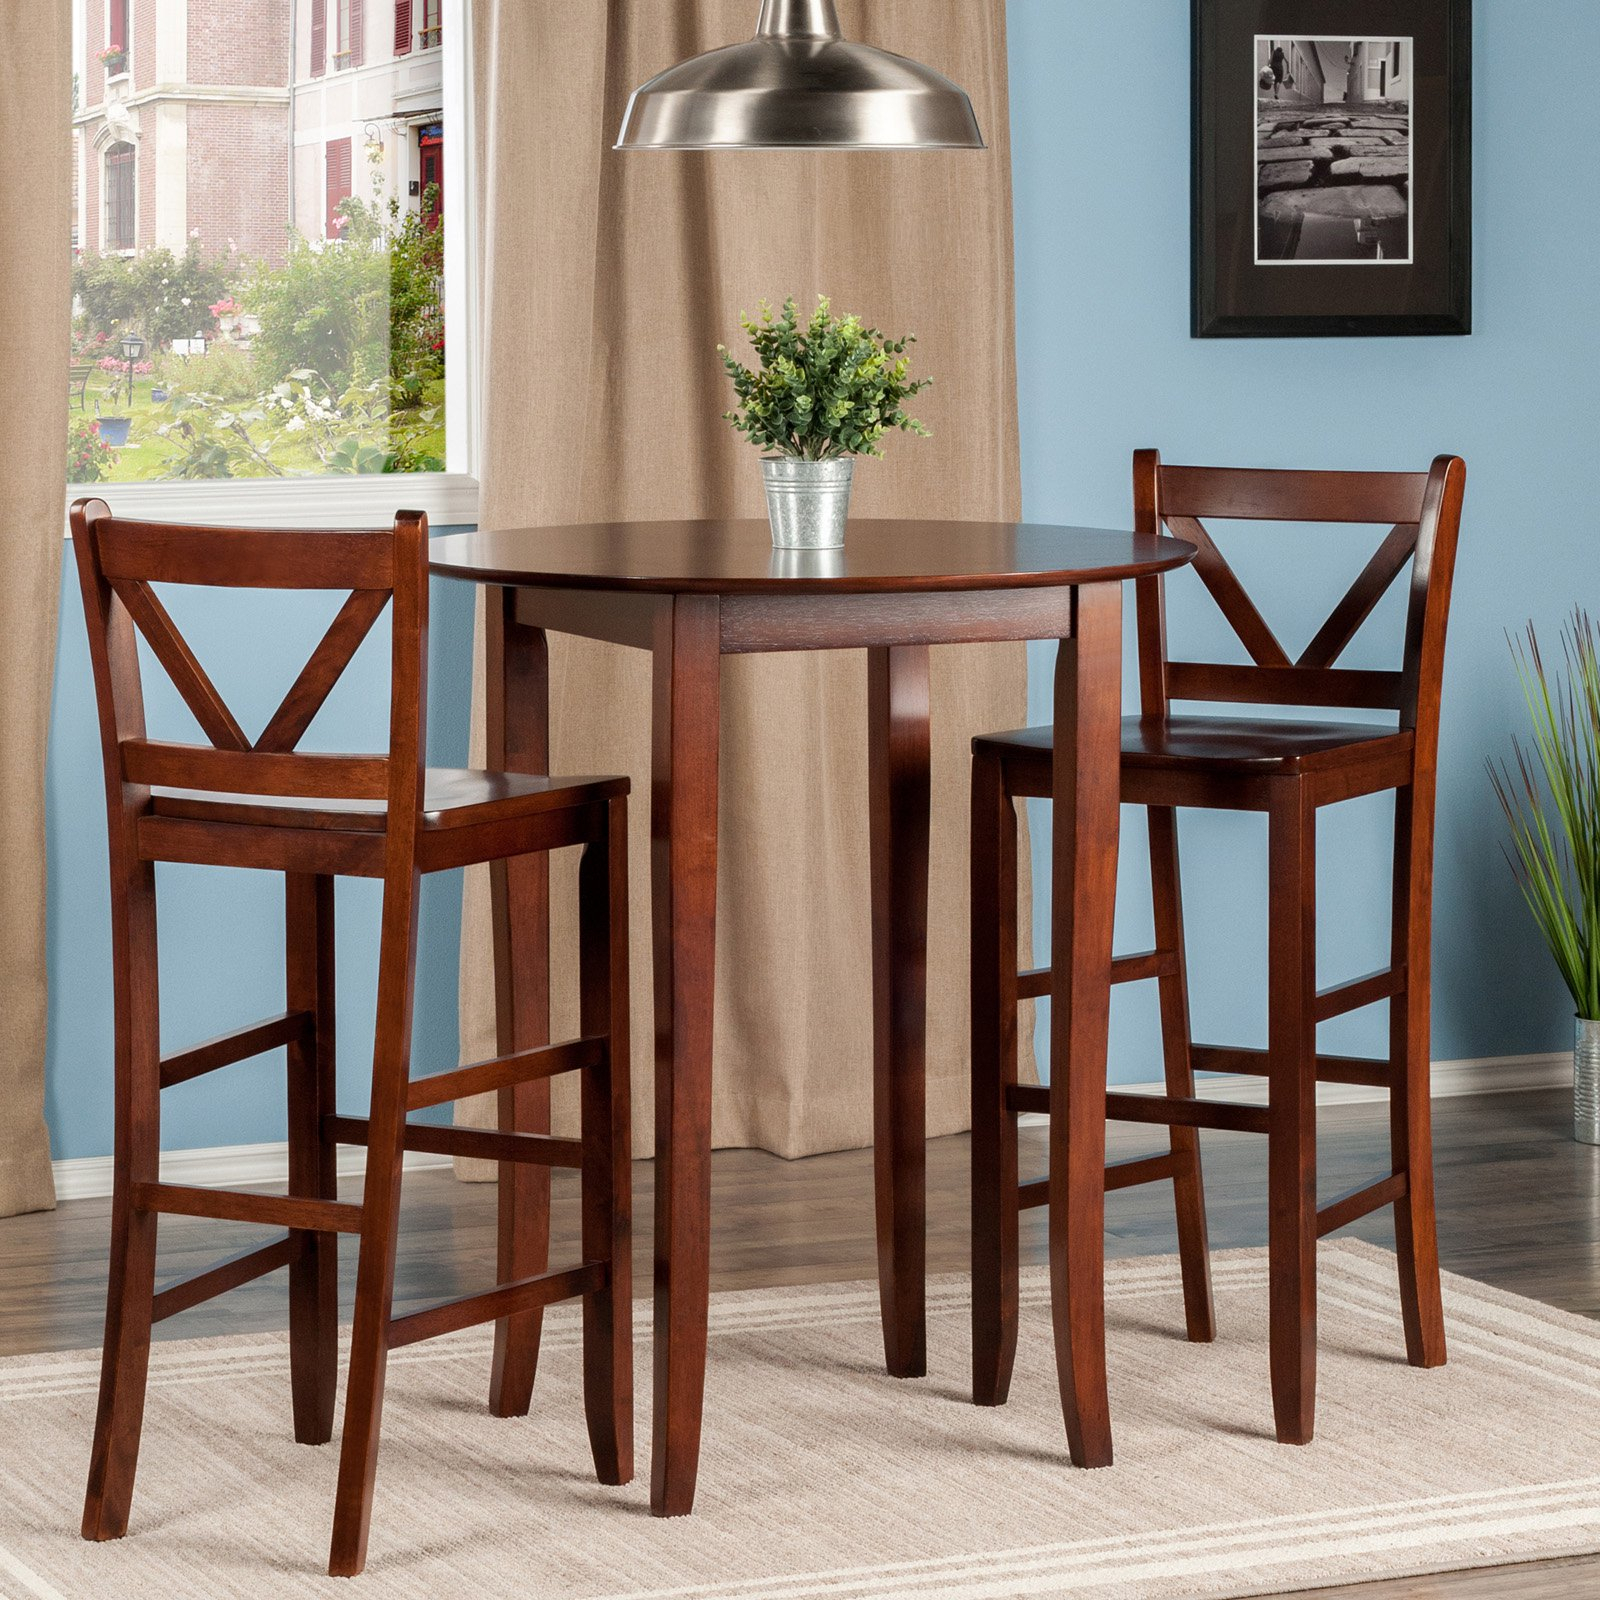 Winsome Trading Fiona 3 Piece Counter Height Round Dining Table Set Within Recent Winsome 3 Piece Counter Height Dining Sets (View 6 of 20)